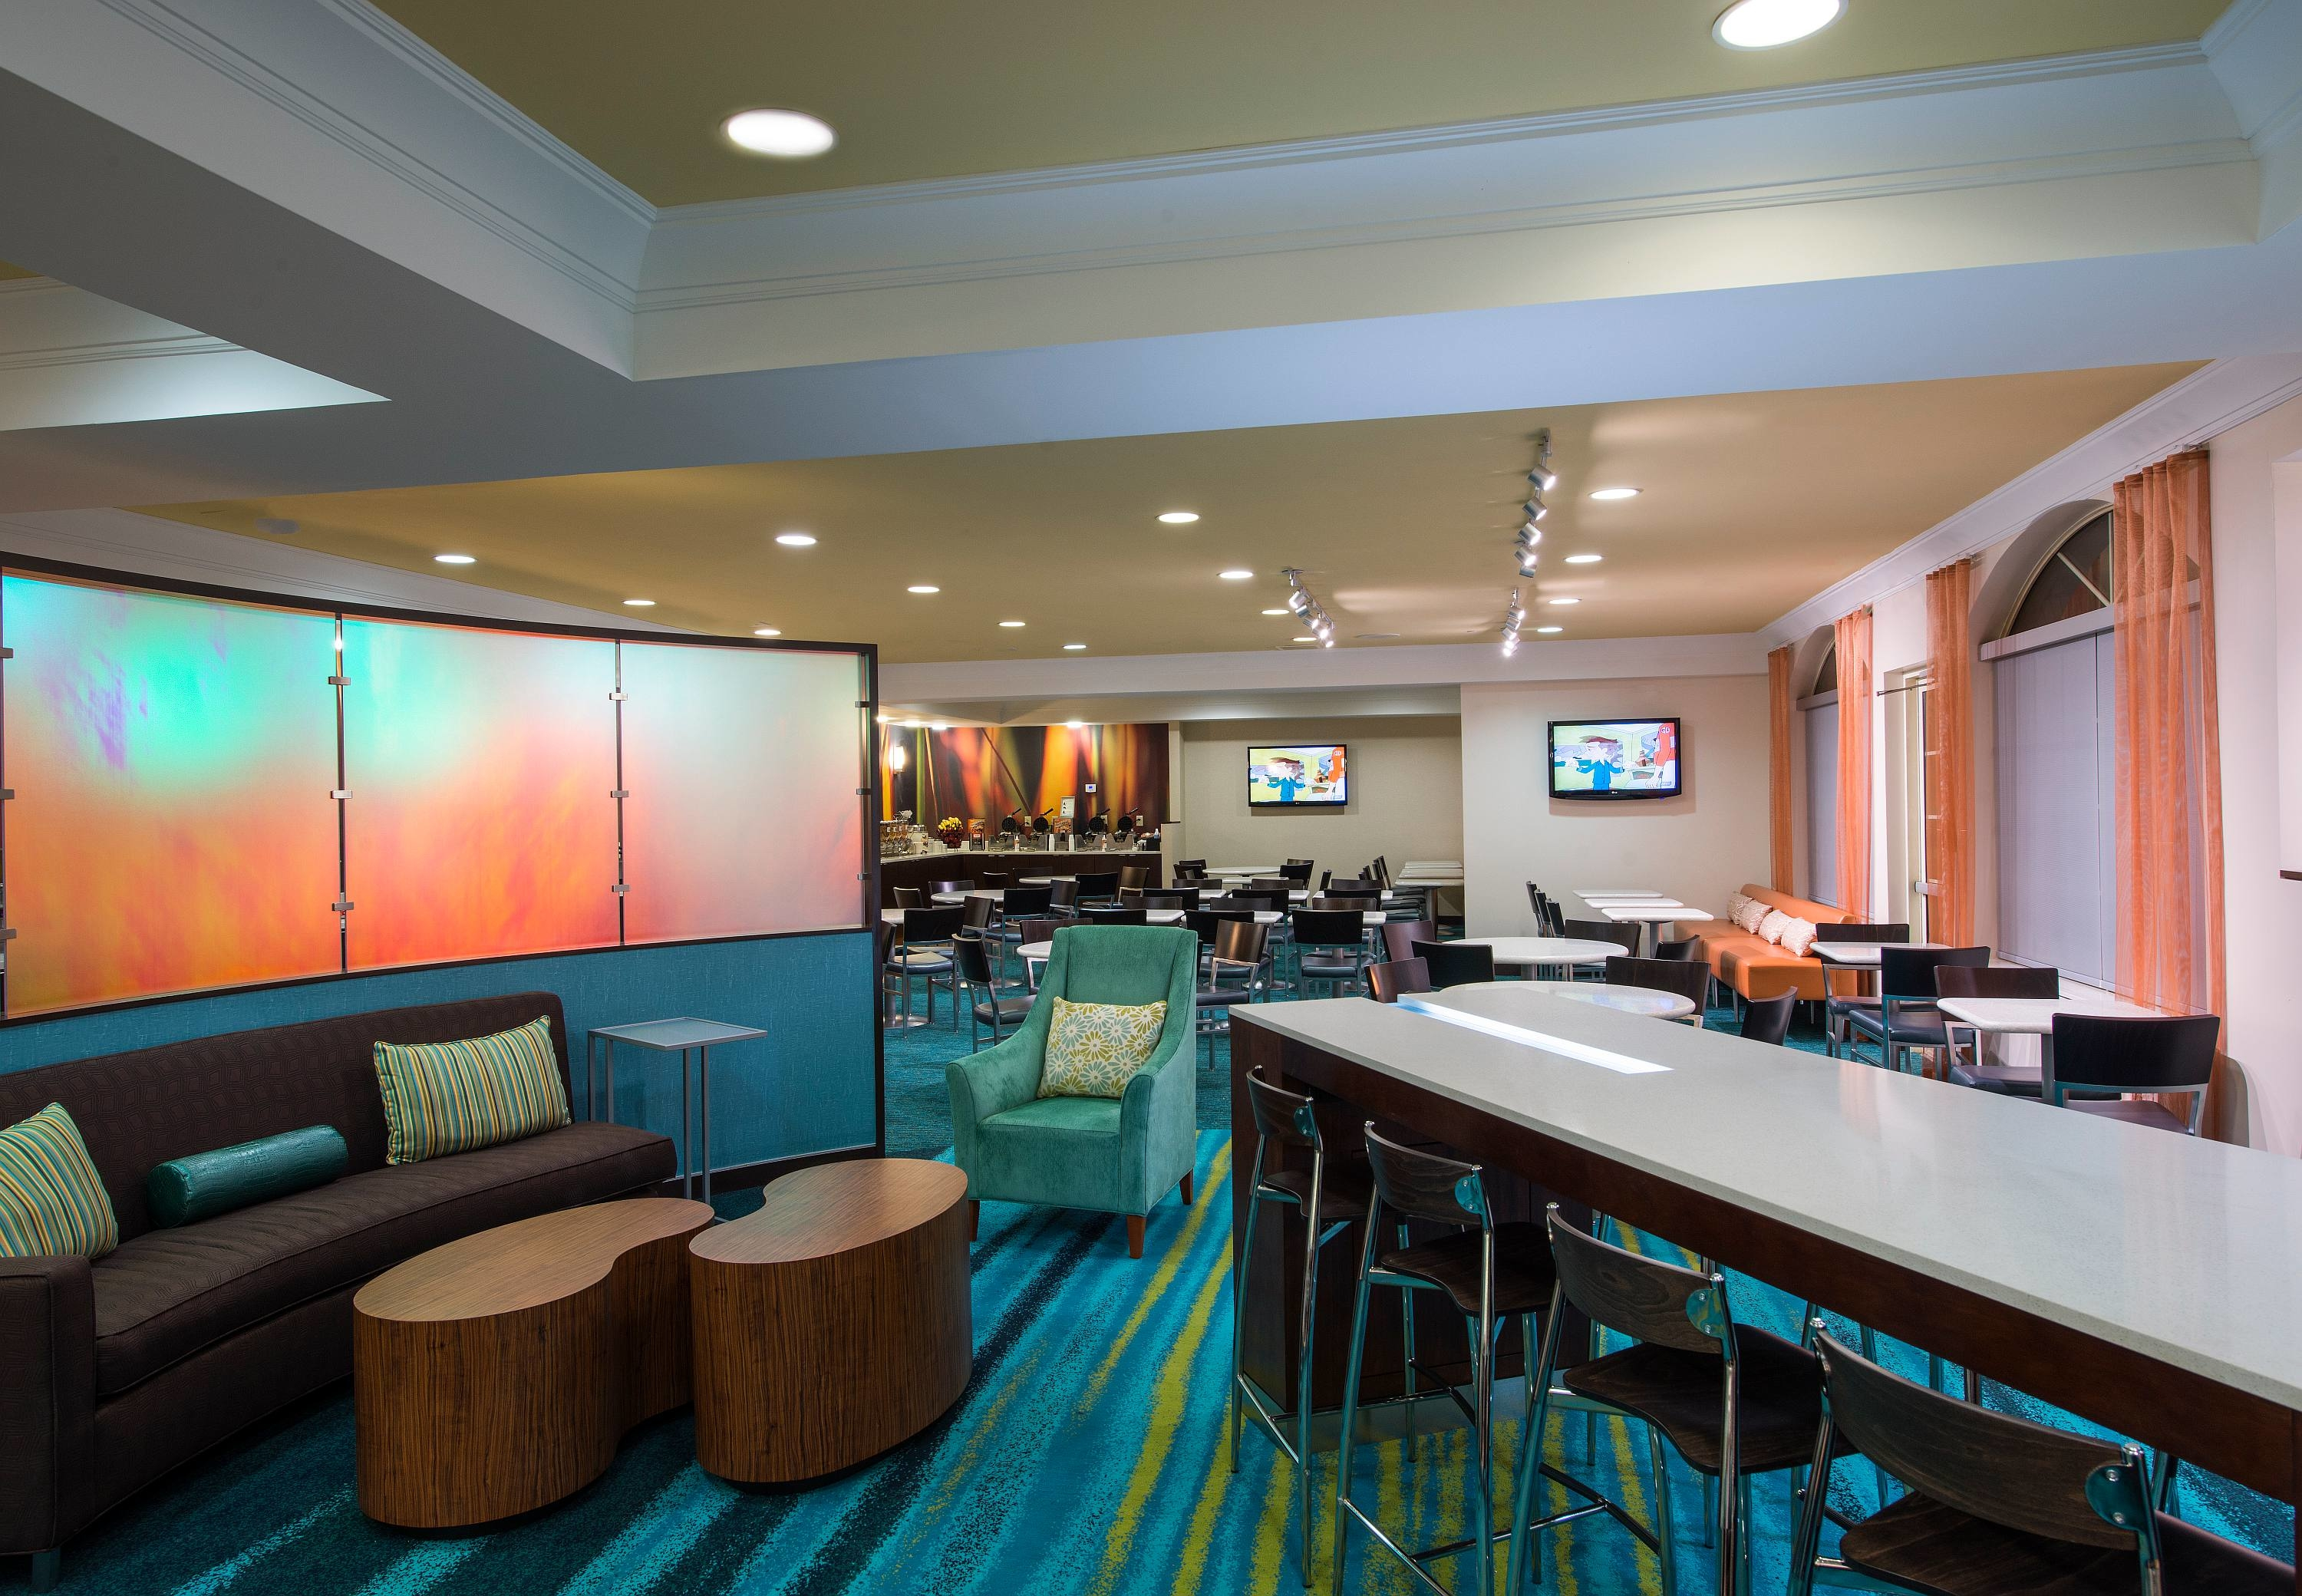 SpringHill Suites by Marriott Williamsburg image 1